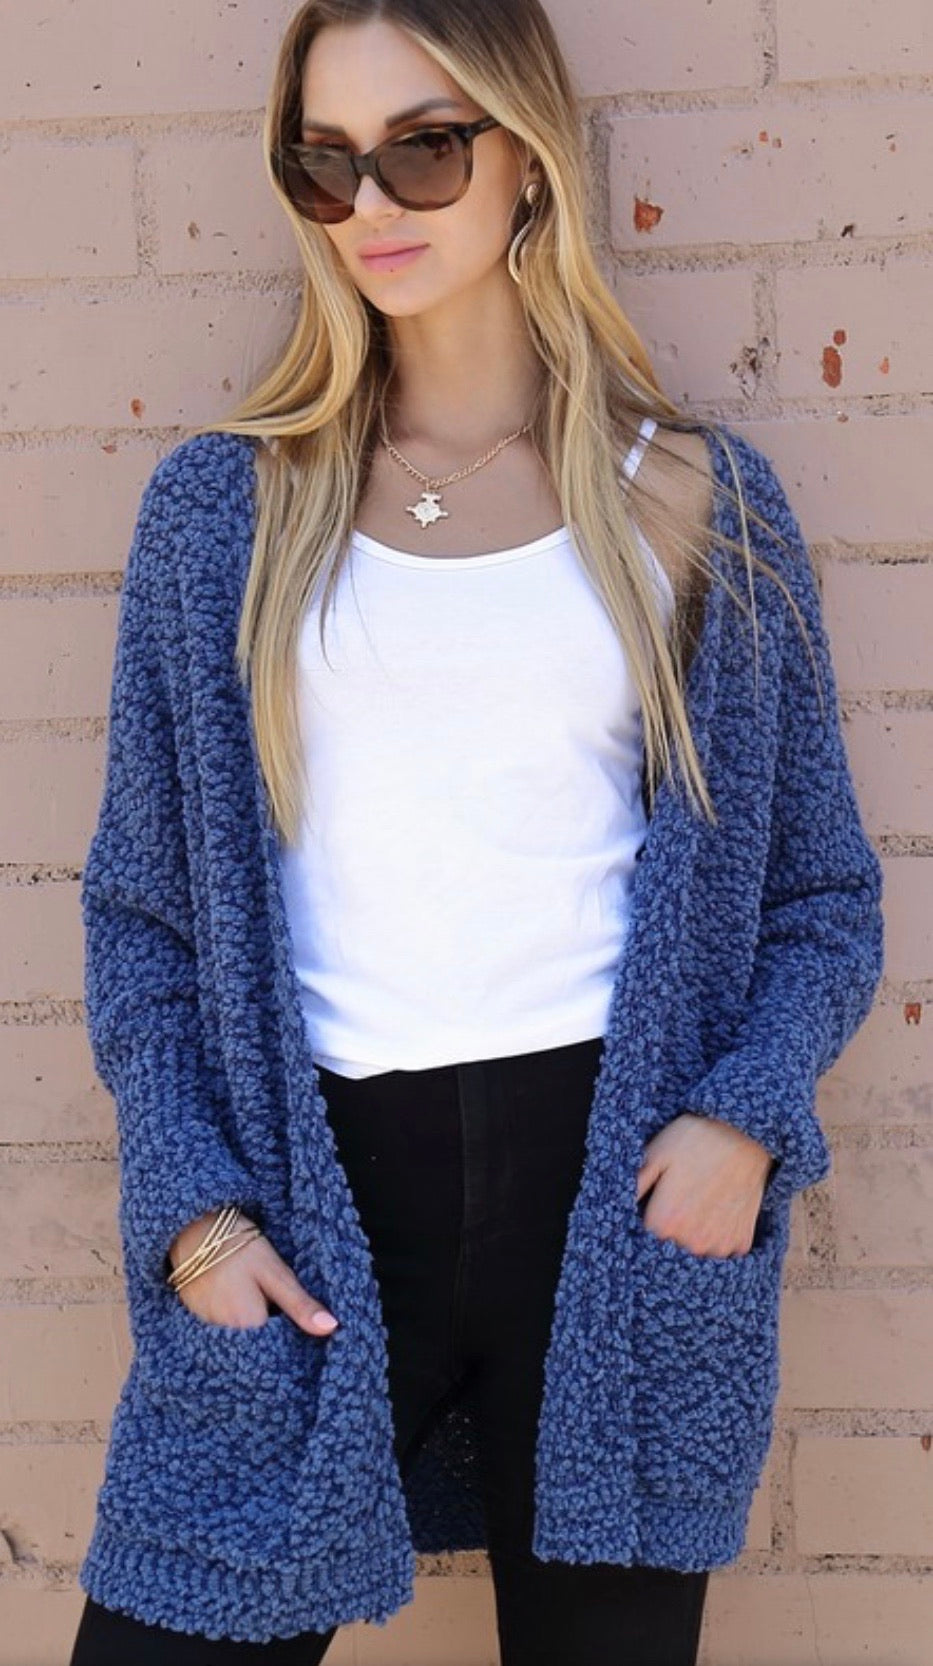 Dusty Blue Popcorn Cardigan